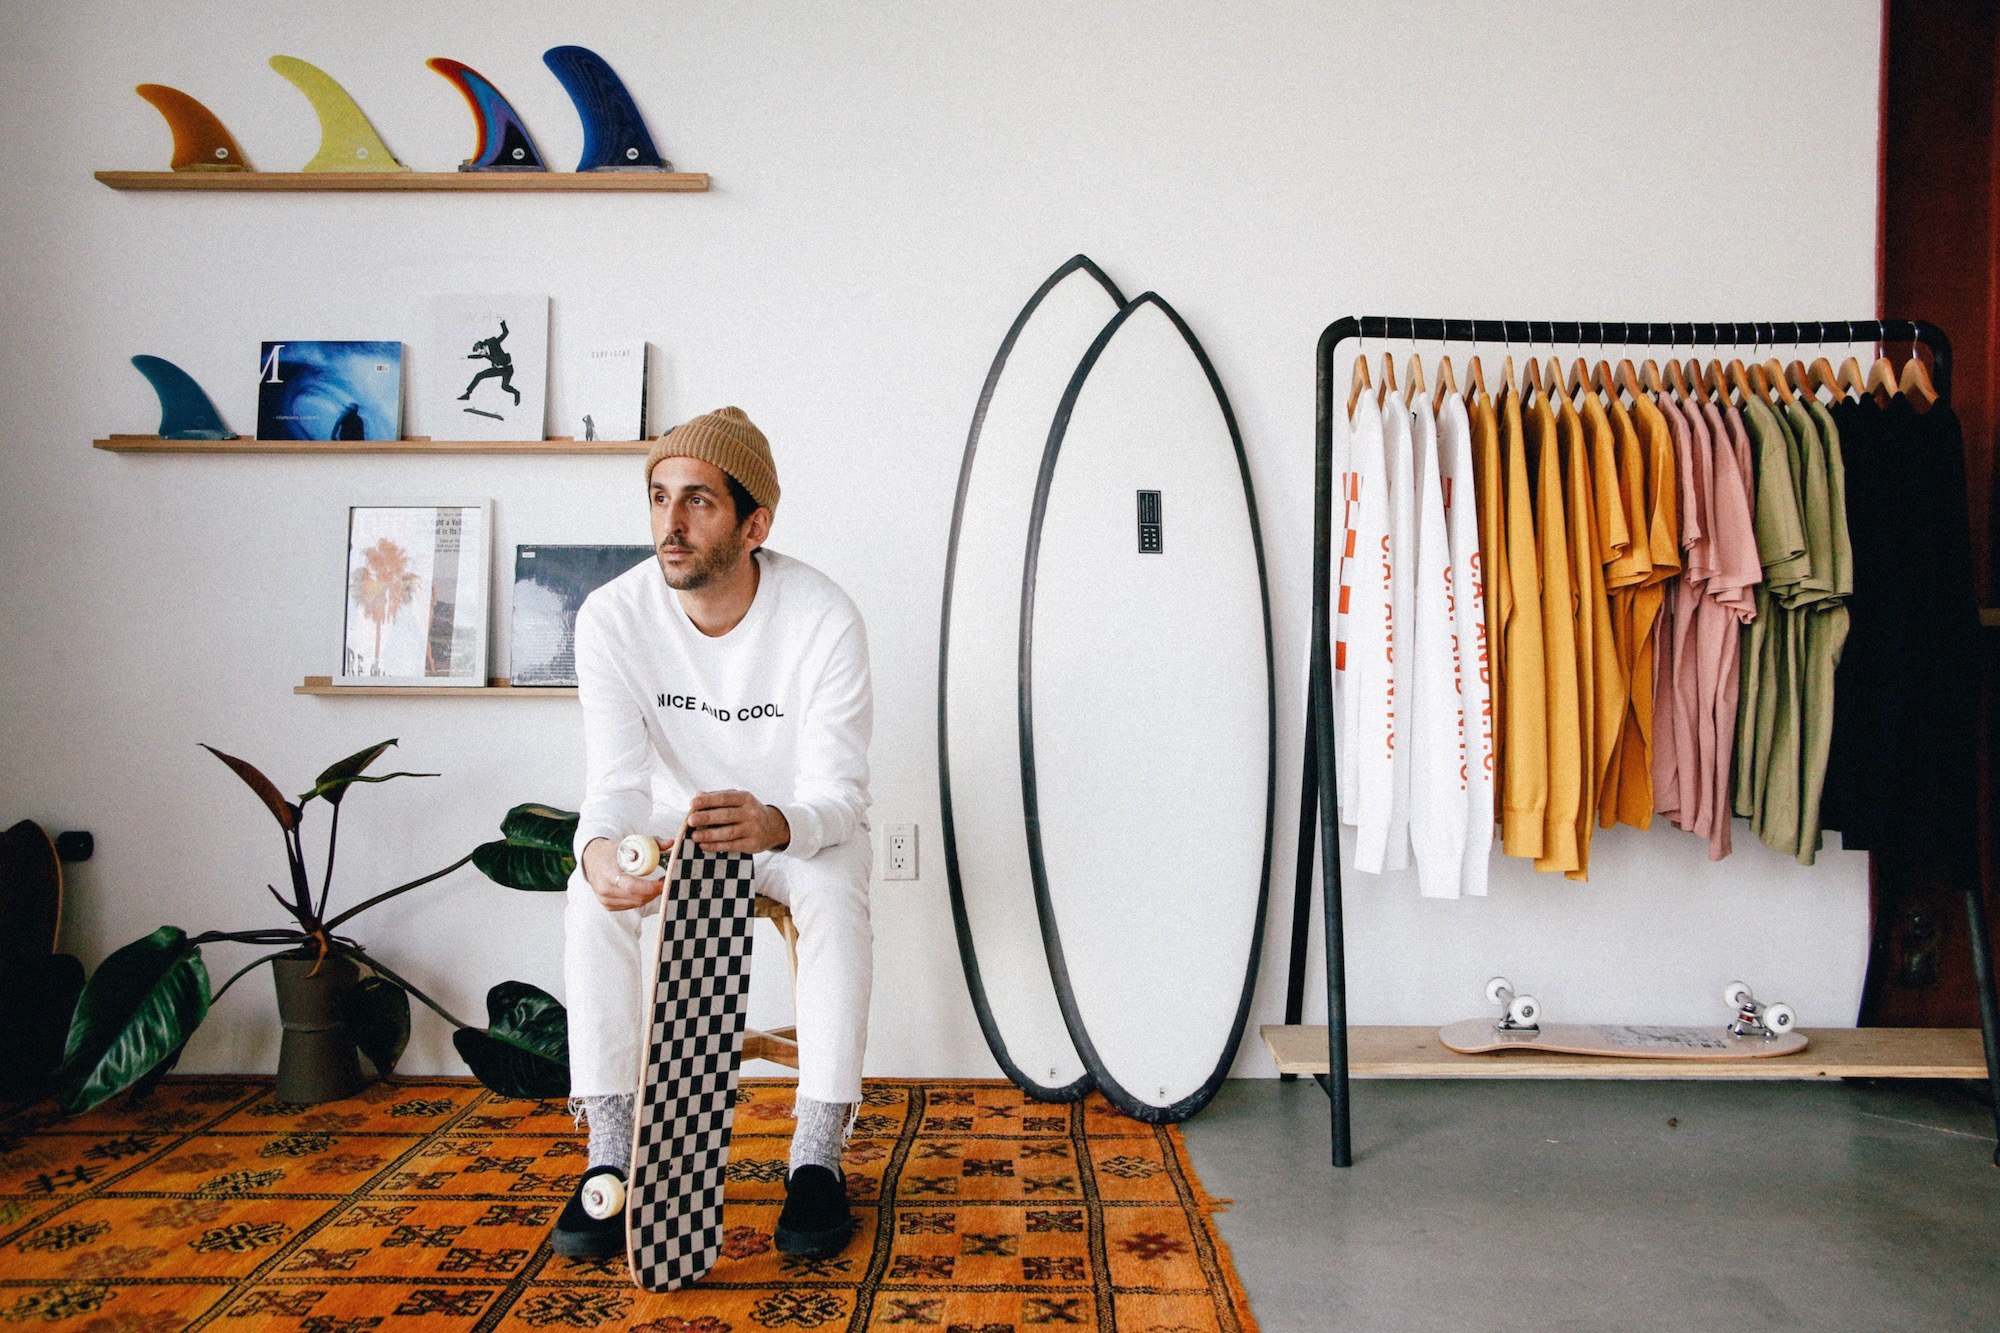 281f5b822b3d SURF SHOP is a pop-up lifestyle shop opened by SALT SURF in late 2016. It  brings together the full SALT SURF line, in addition to a few of their  favorite ...